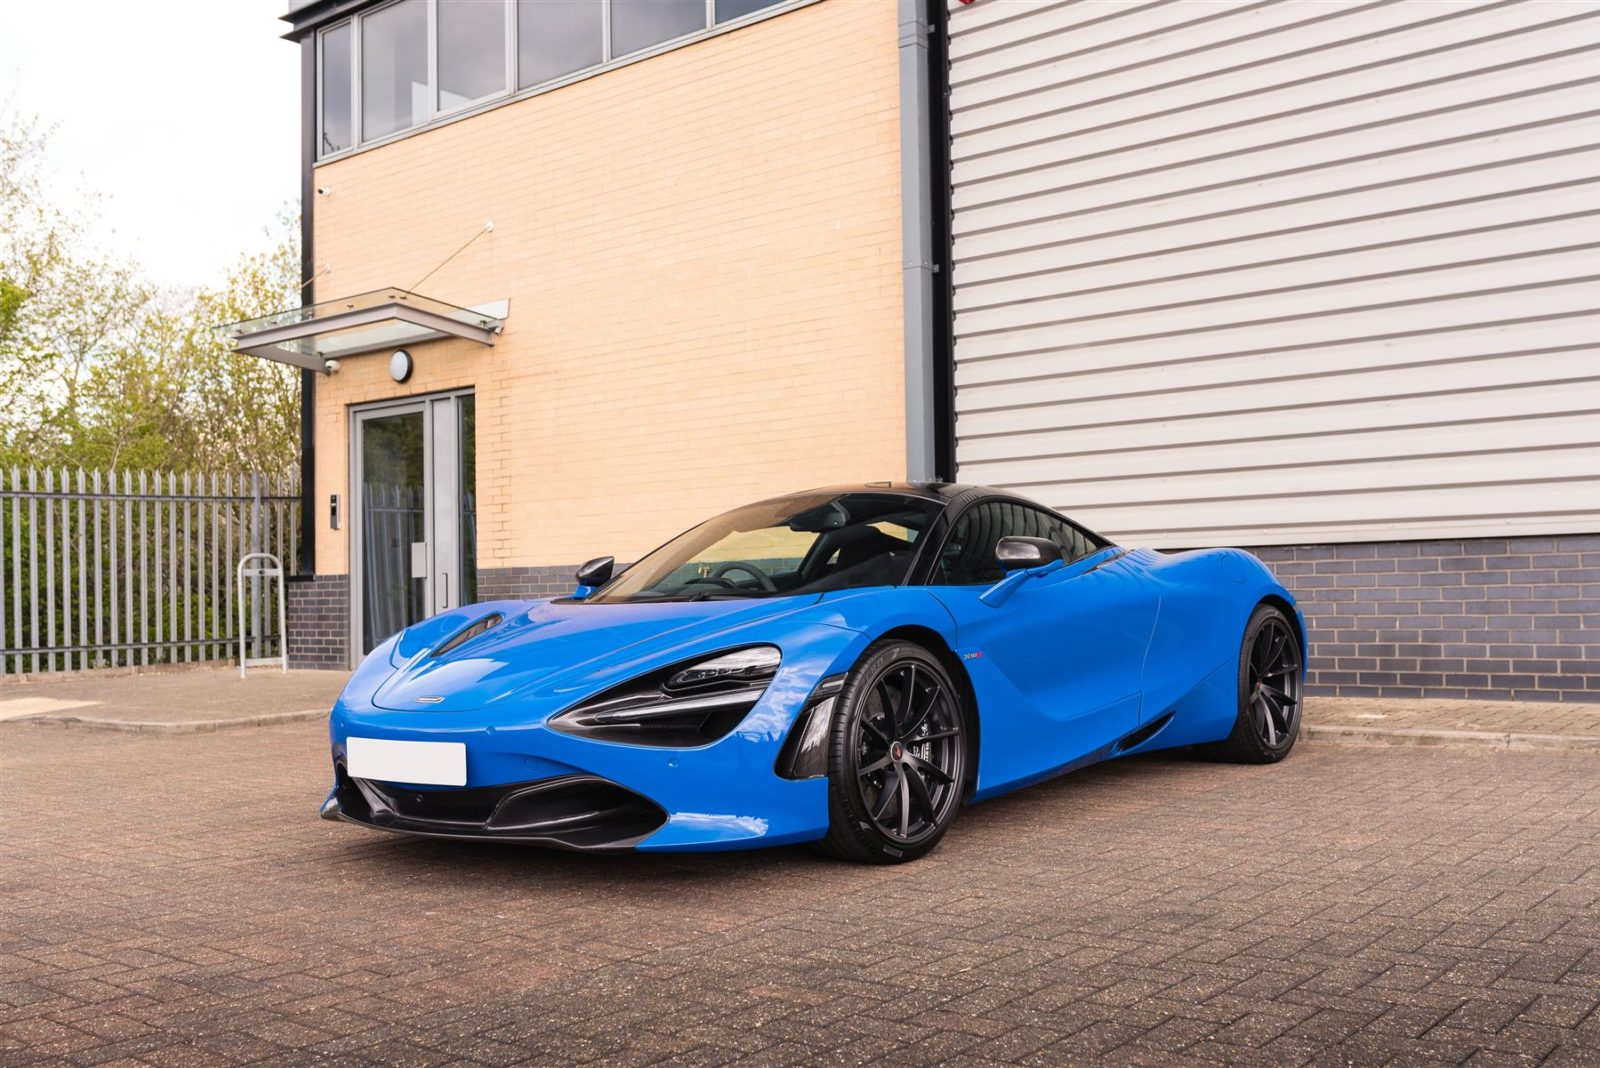 mike-flewitt's-mclaren-720s-is-up-for-grabs-with-many-mso-goodies